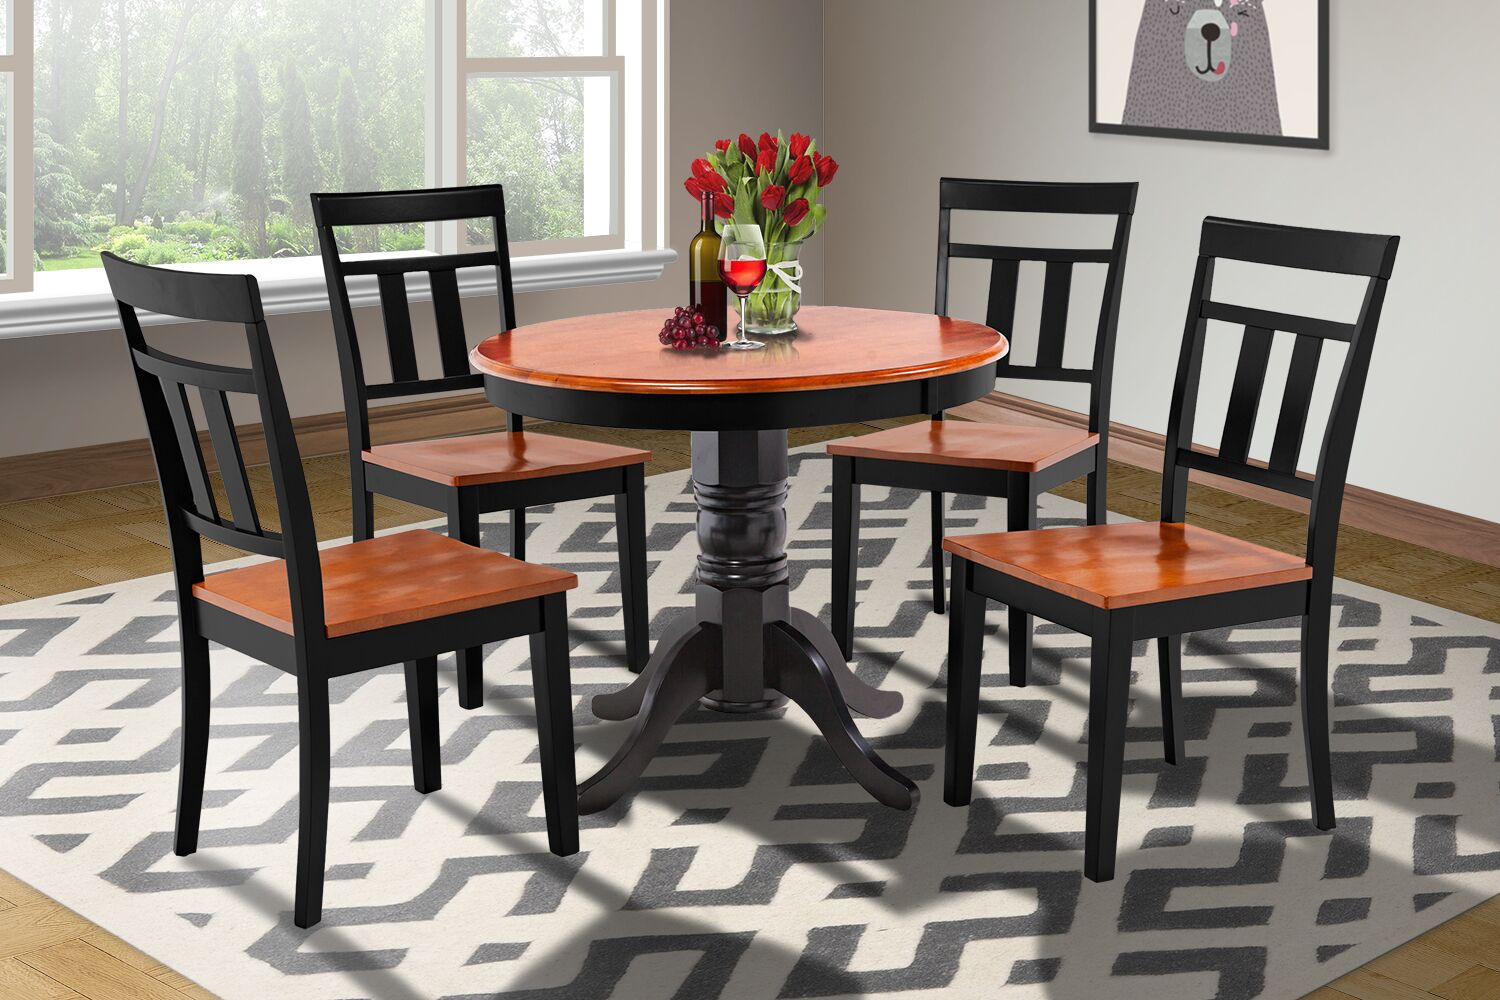 Dining Table Sets Cedarville 5 Piece Solid Wood Dining Set